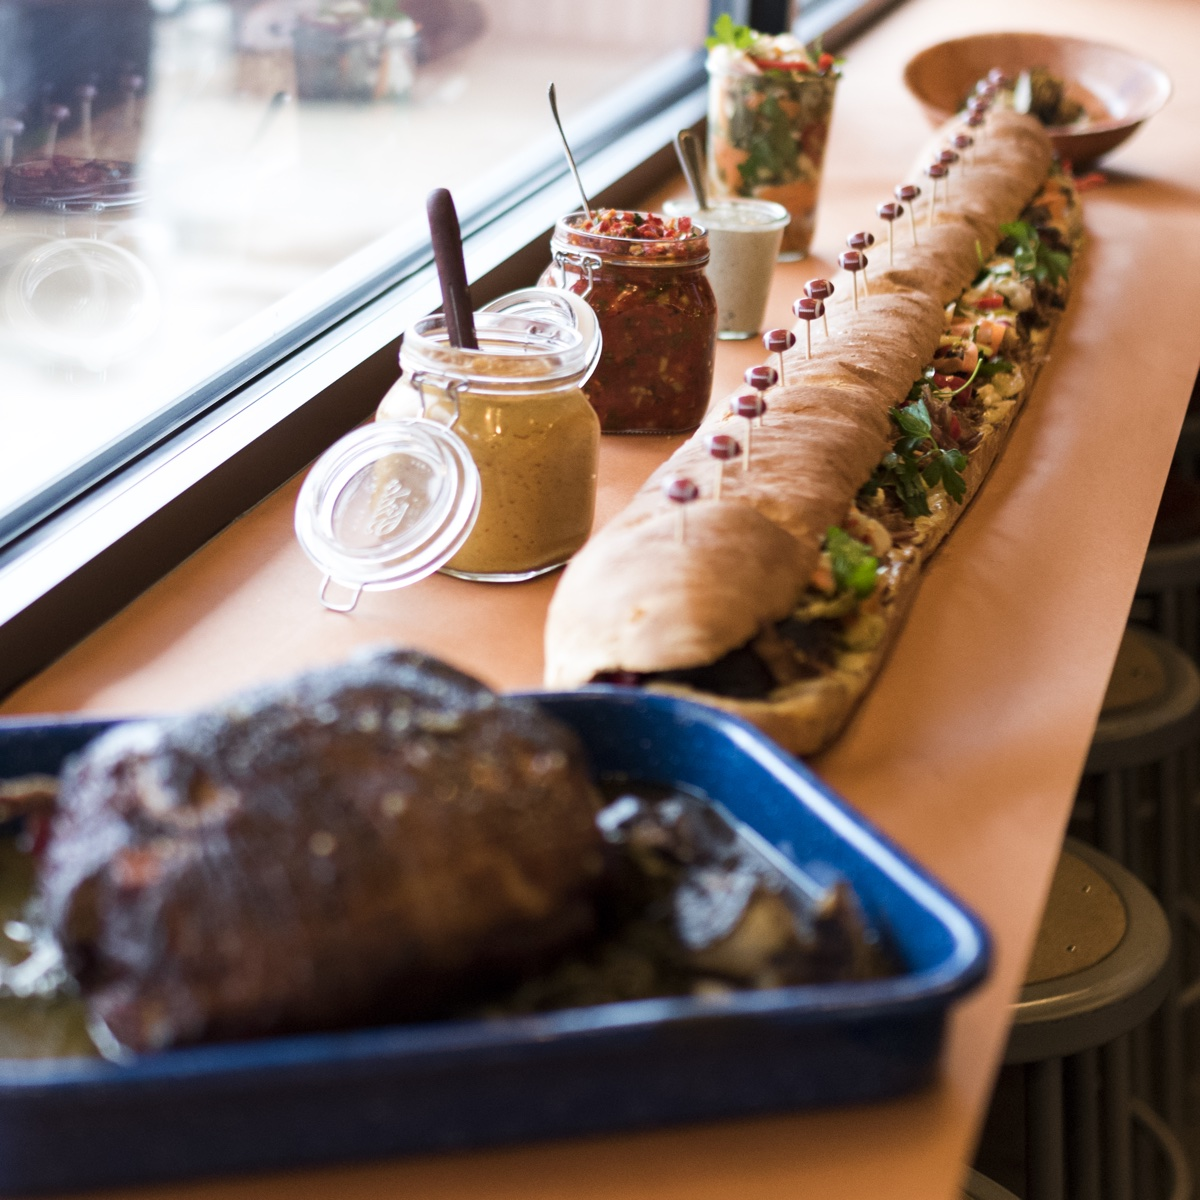 Roasted pork shoulder with fennel and broccoli rabe, Sweet Cheeks condiments, and a 5-Foot Pork Bomb